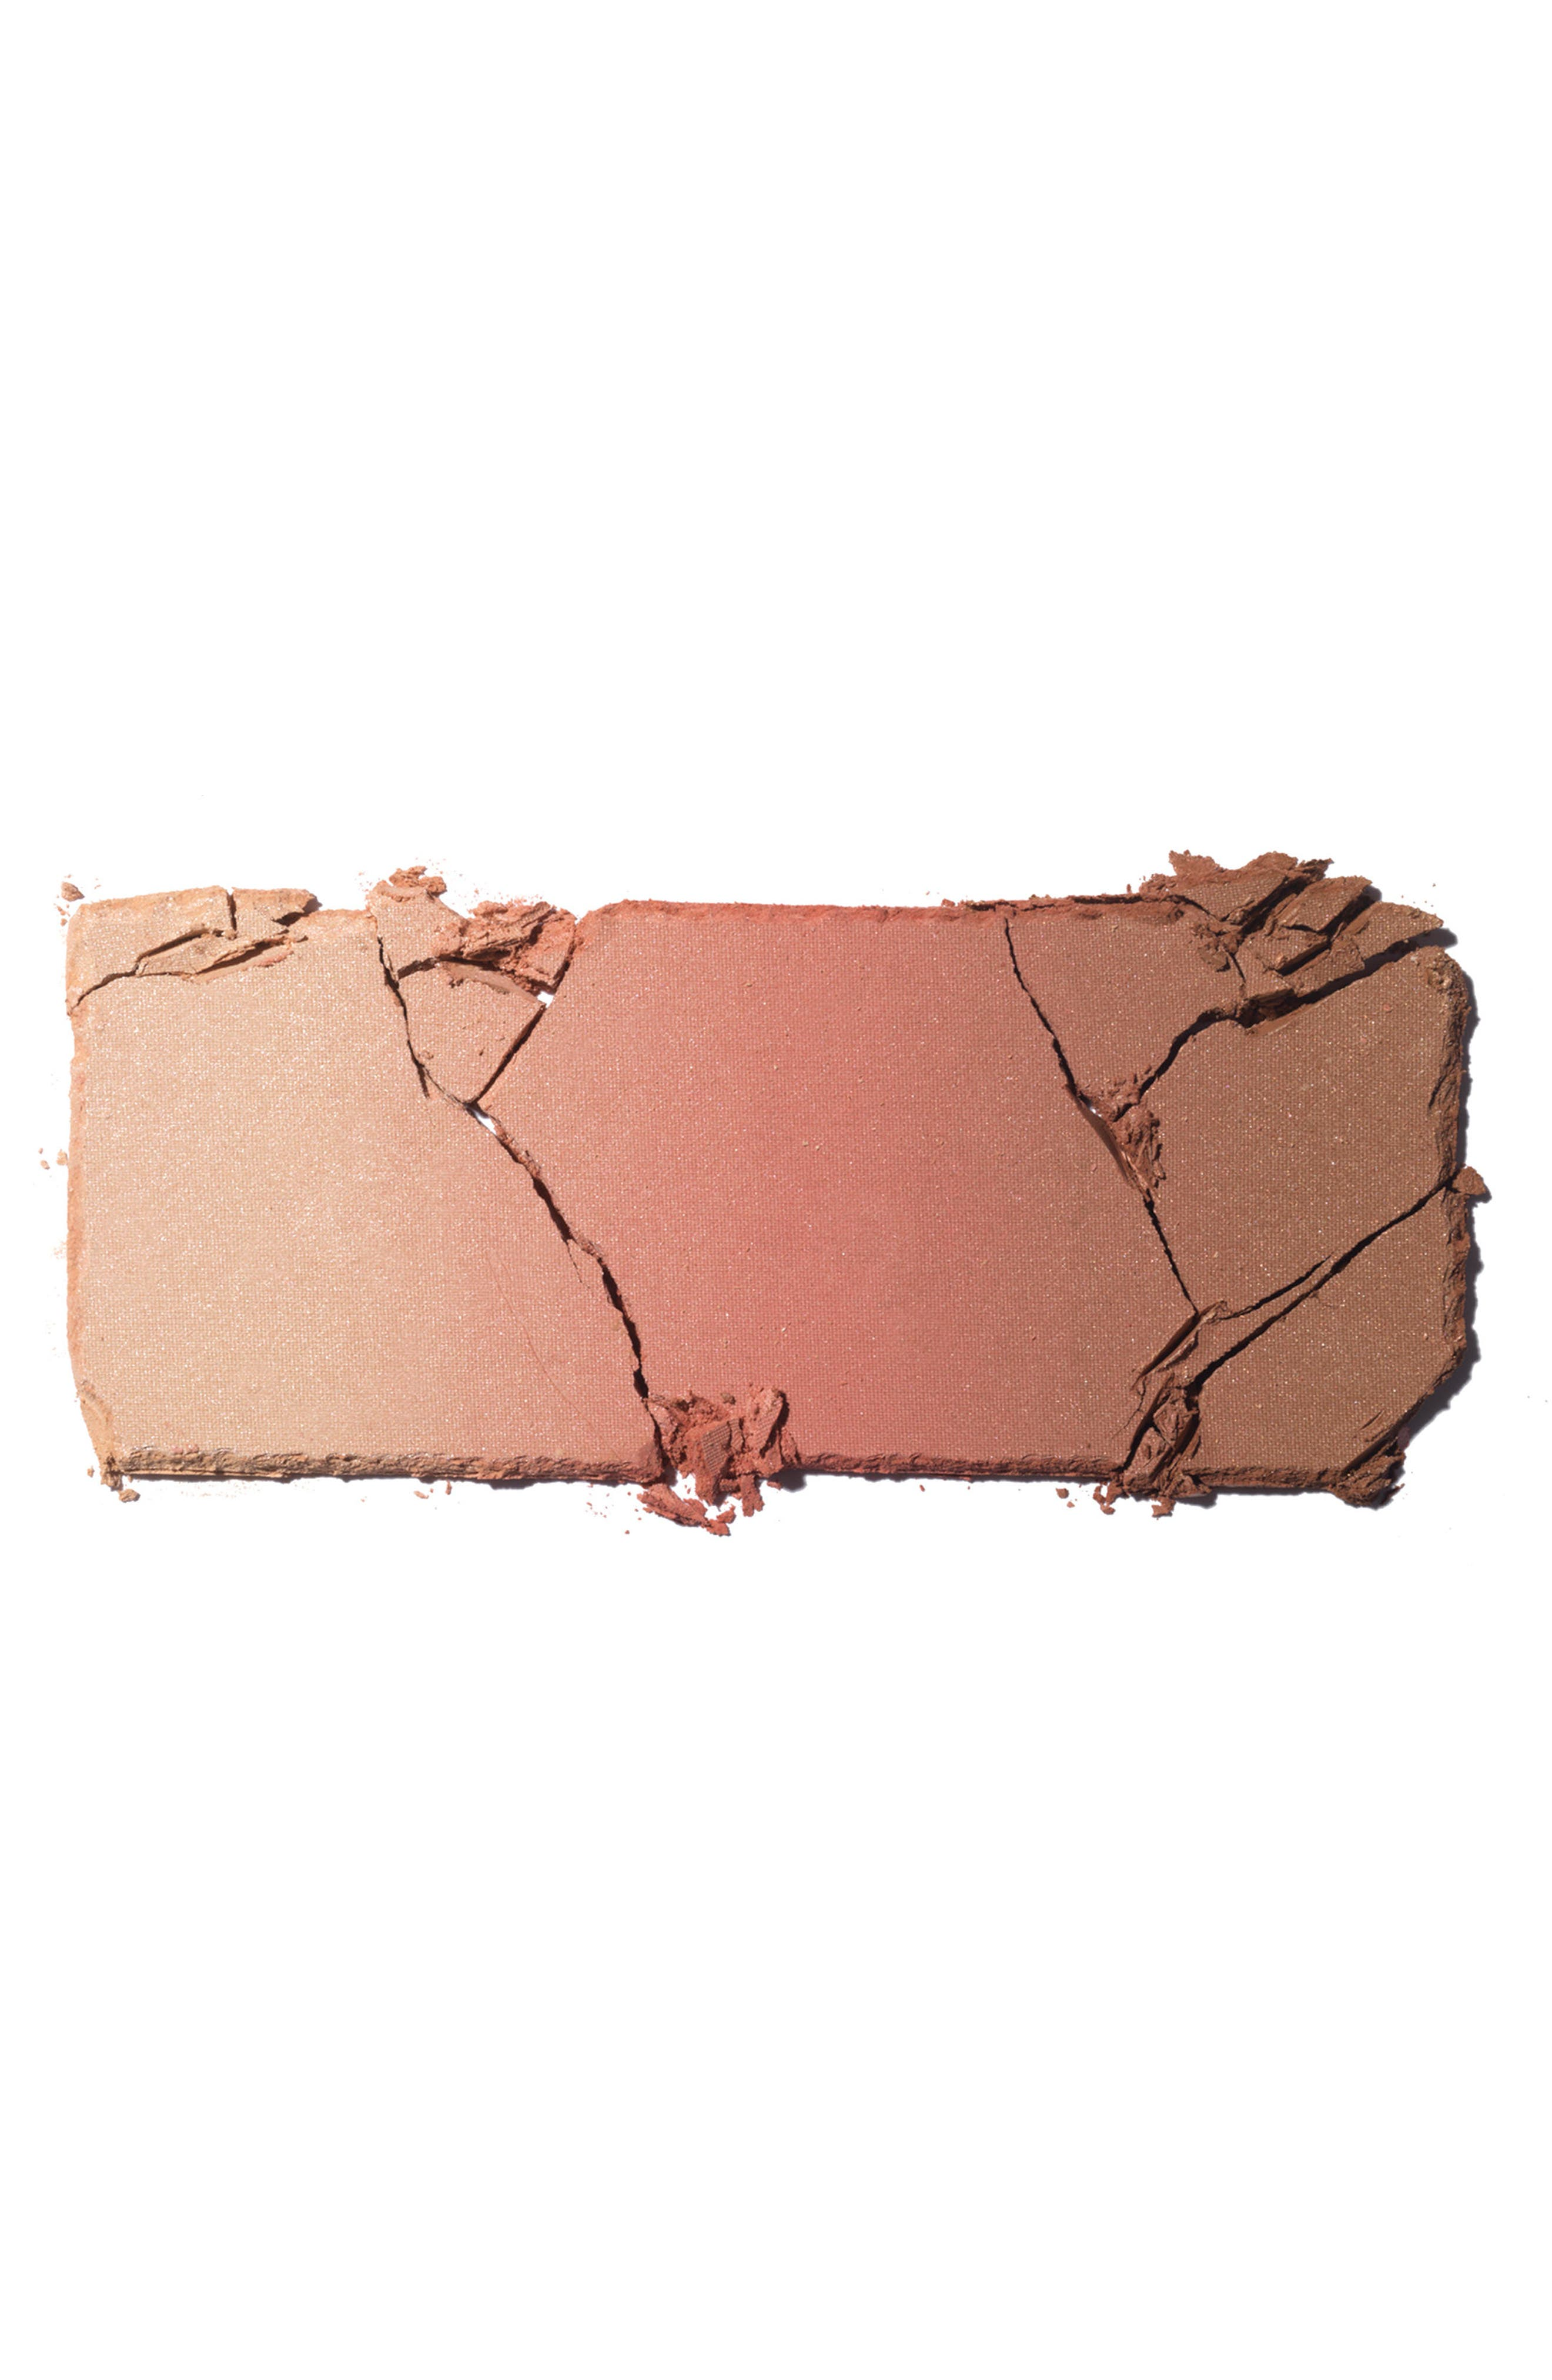 SPACE.NK.apothecary Kevyn Aucoin Beauty The Neo-Bronzer Face Palette,                             Alternate thumbnail 2, color,                             Capri/ Cool Pink